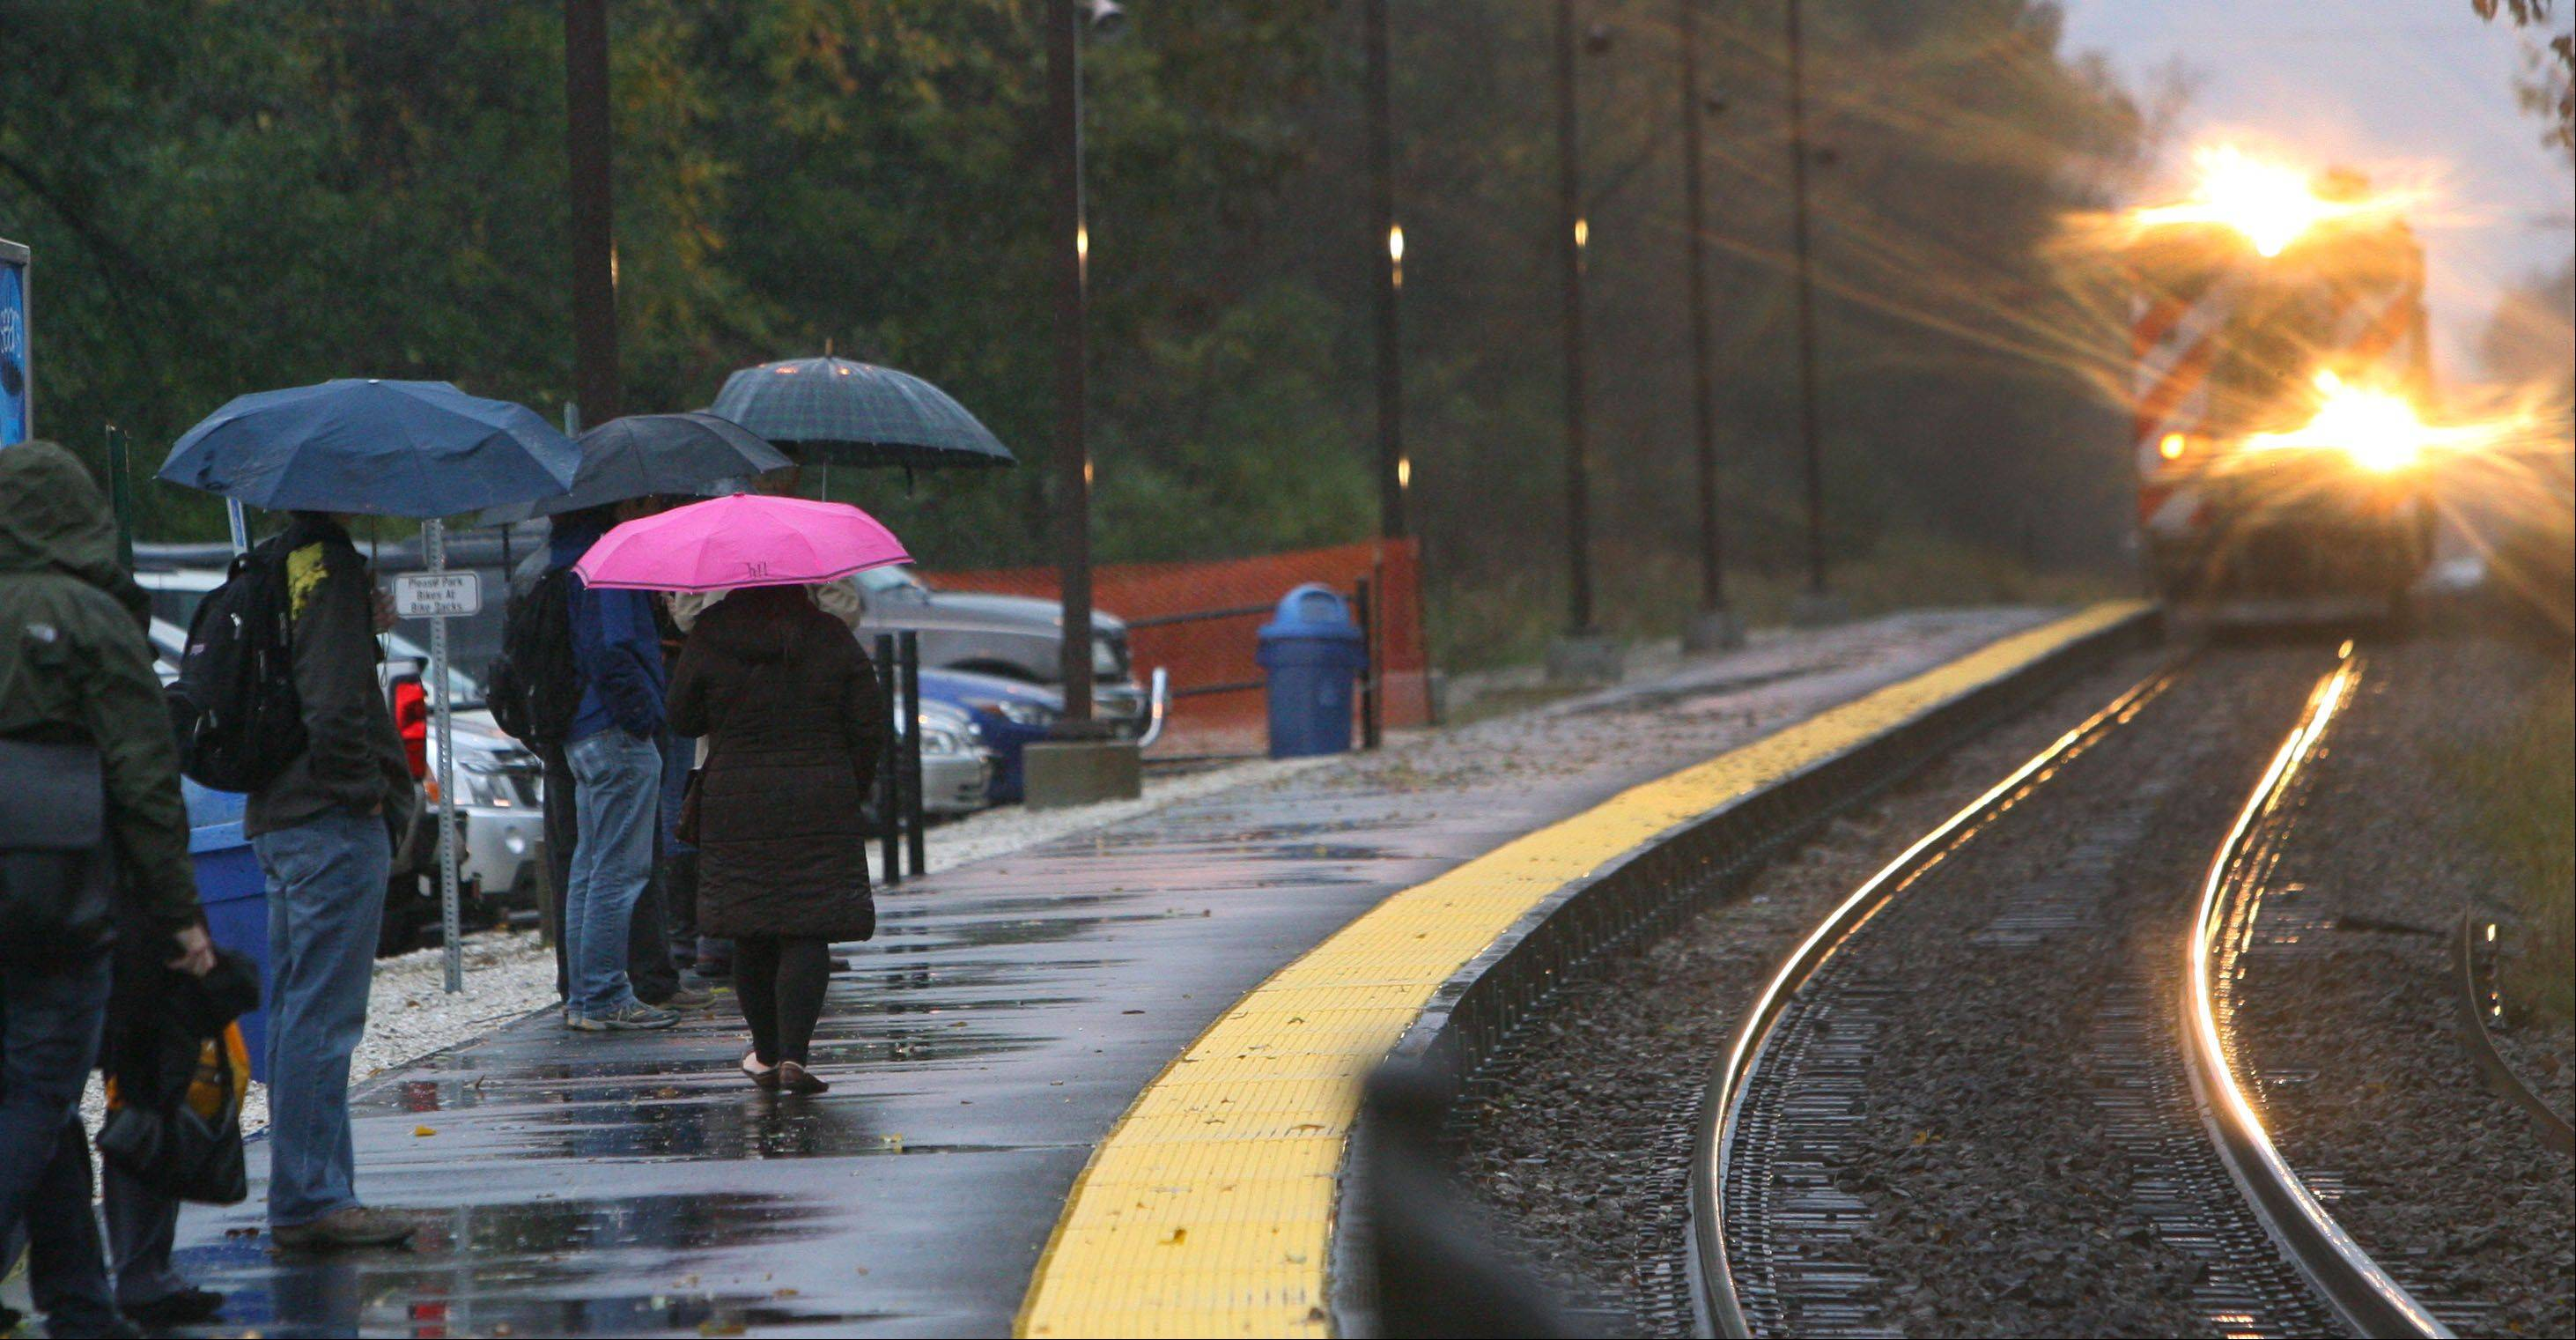 Metra planners hope wind-measuring devices will reduce storm delays.